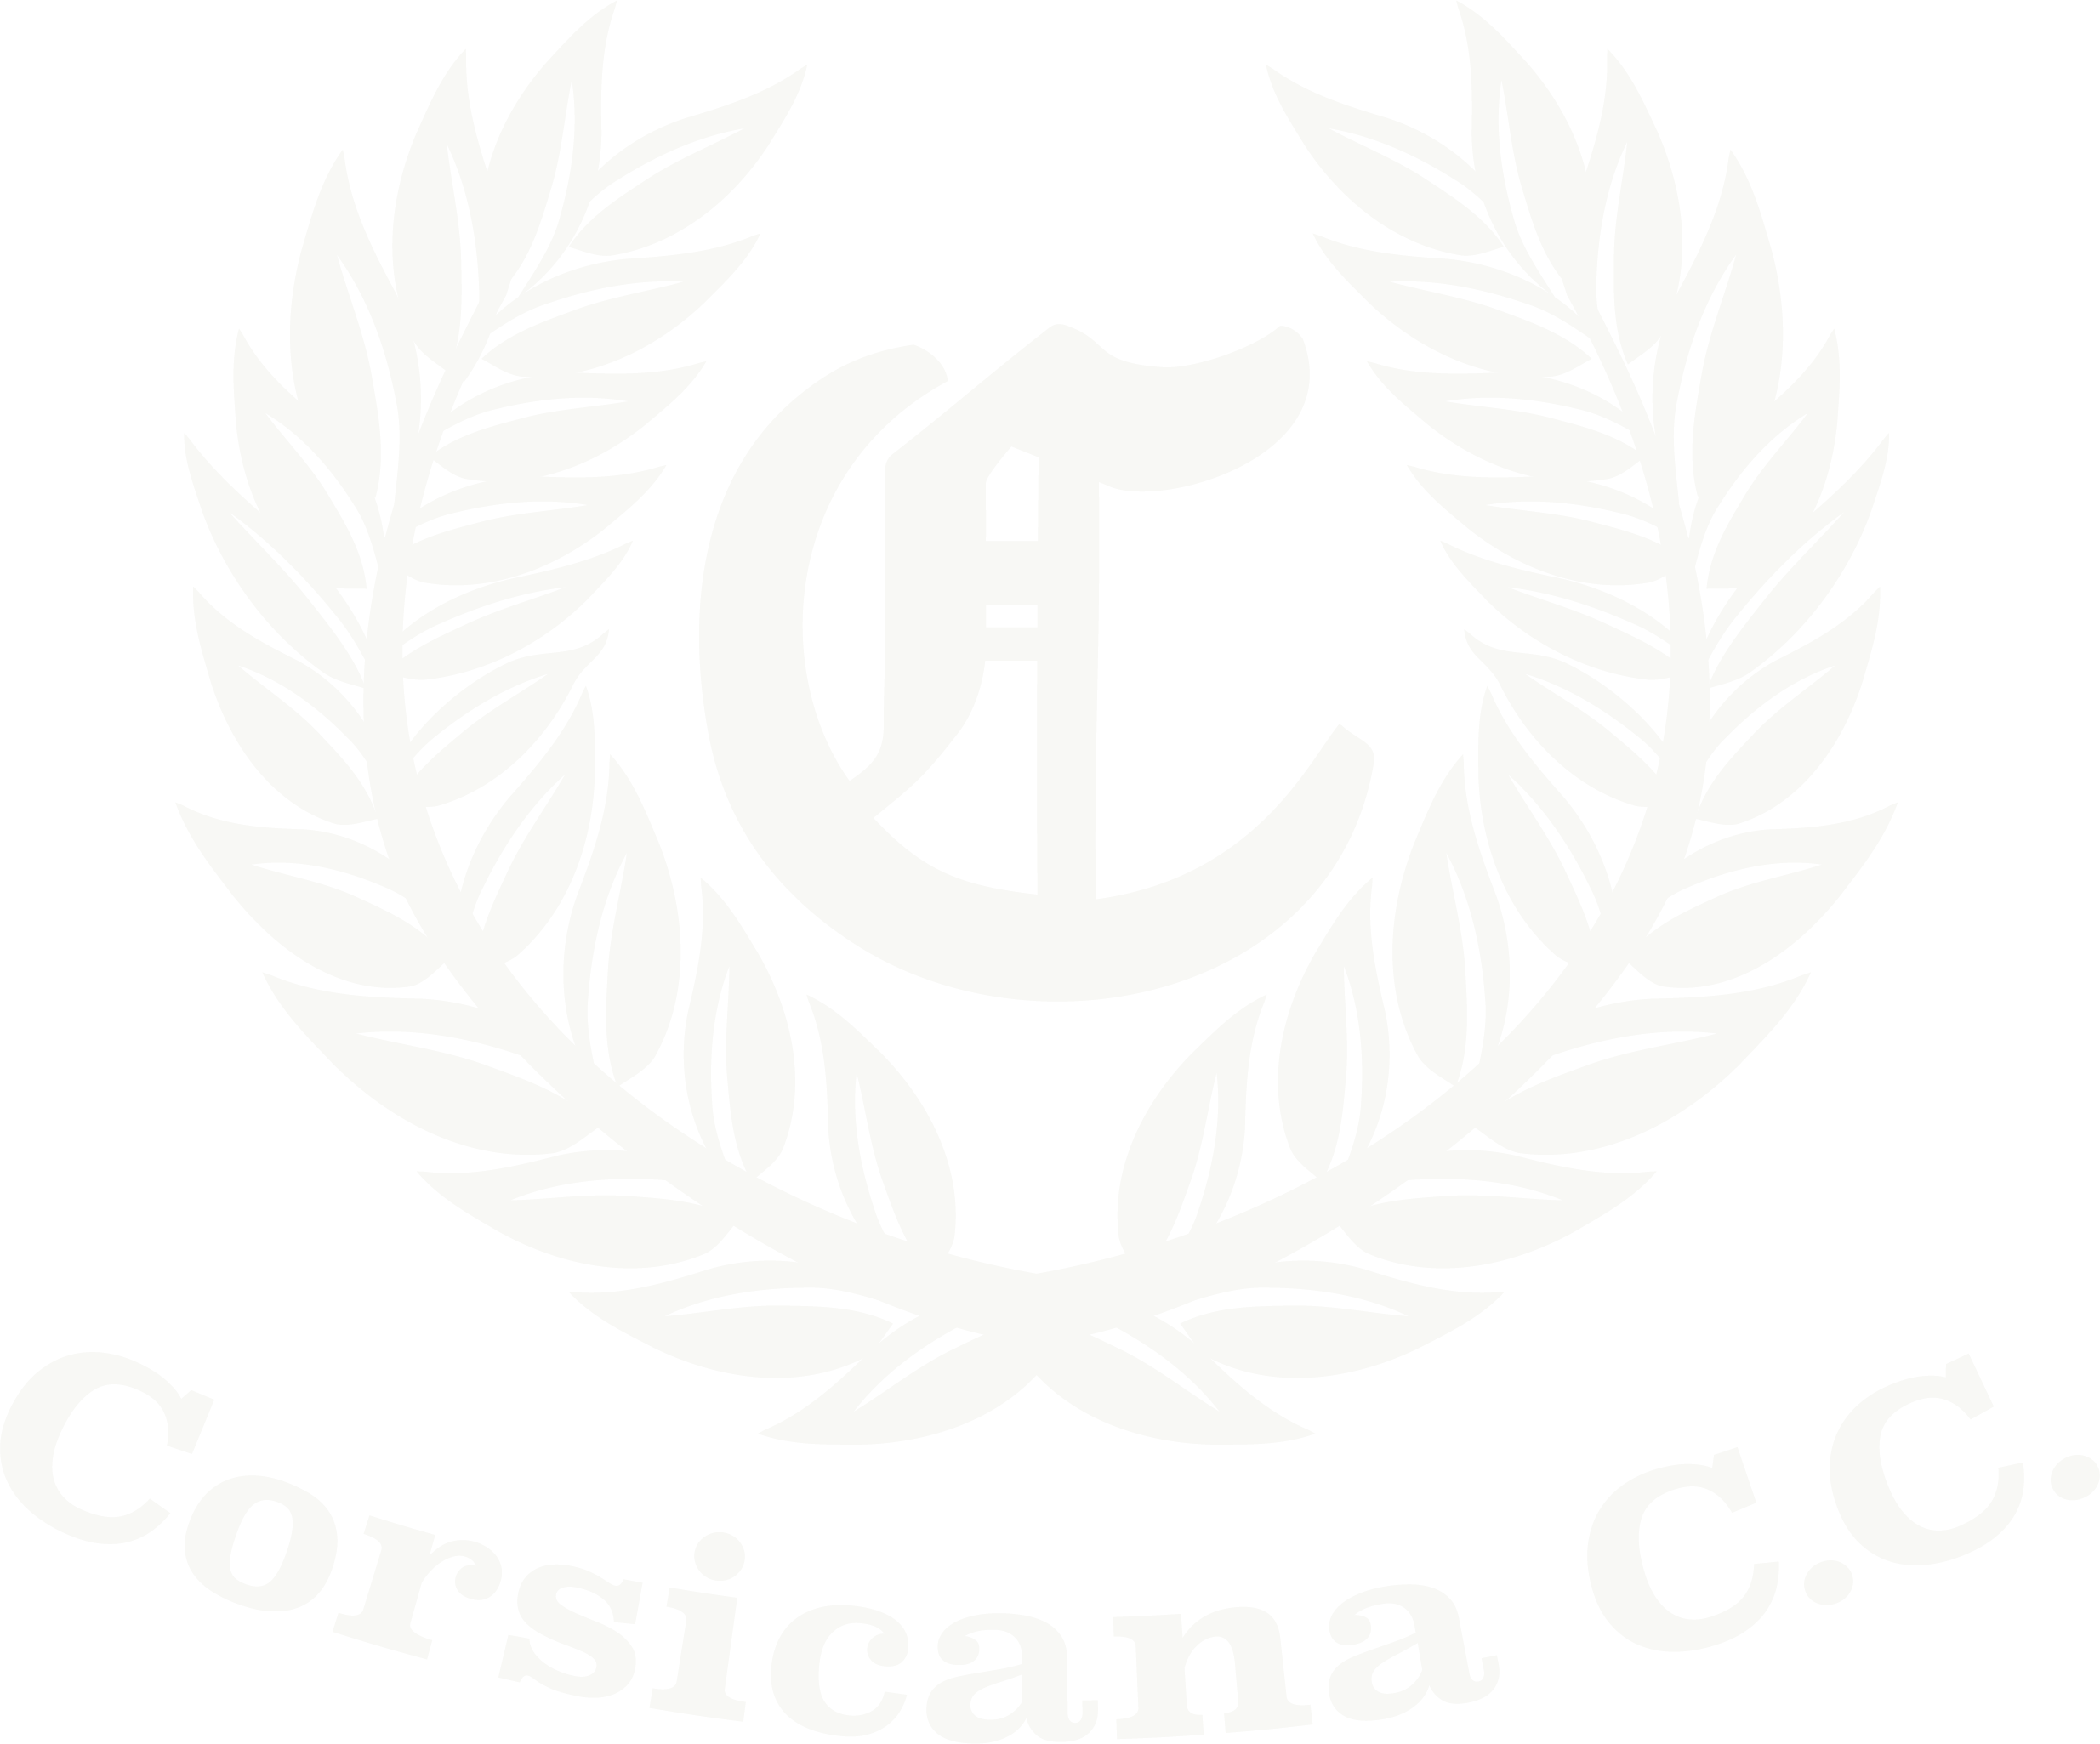 Corsicana Country Club & Golf Course